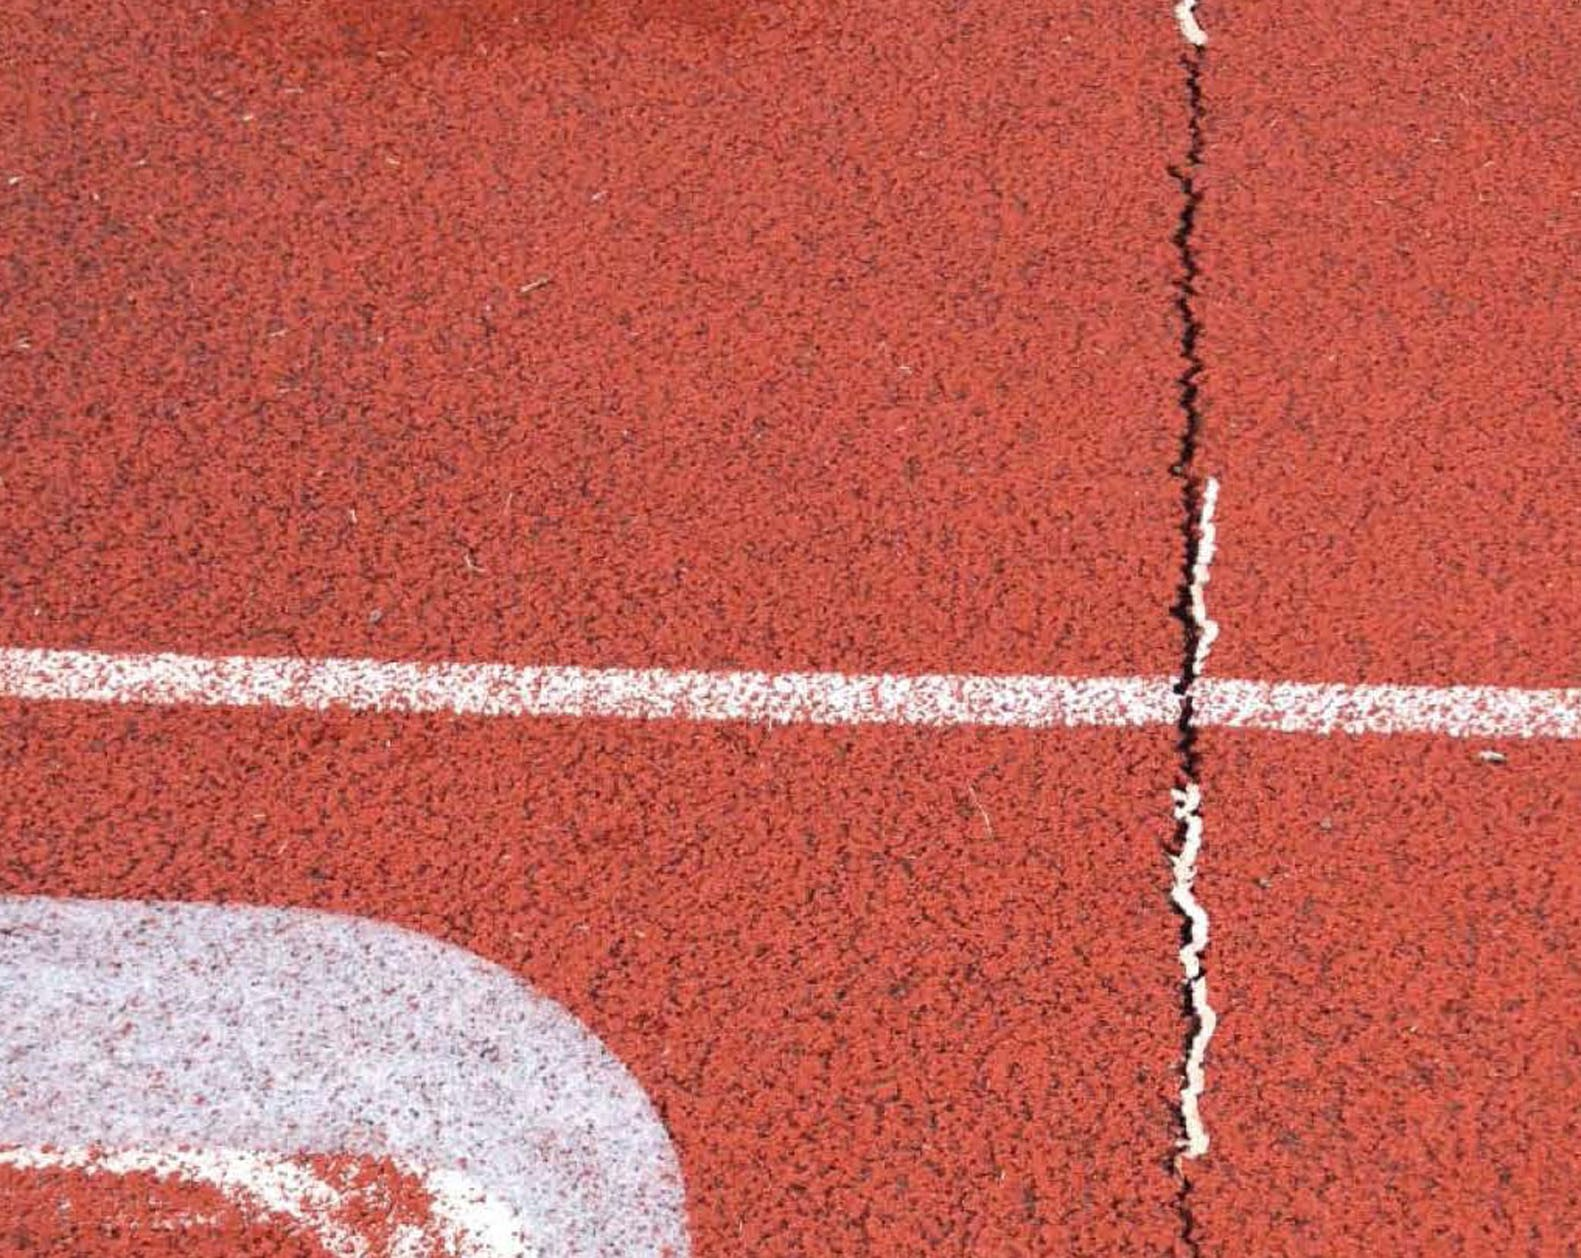 close up of crack in track